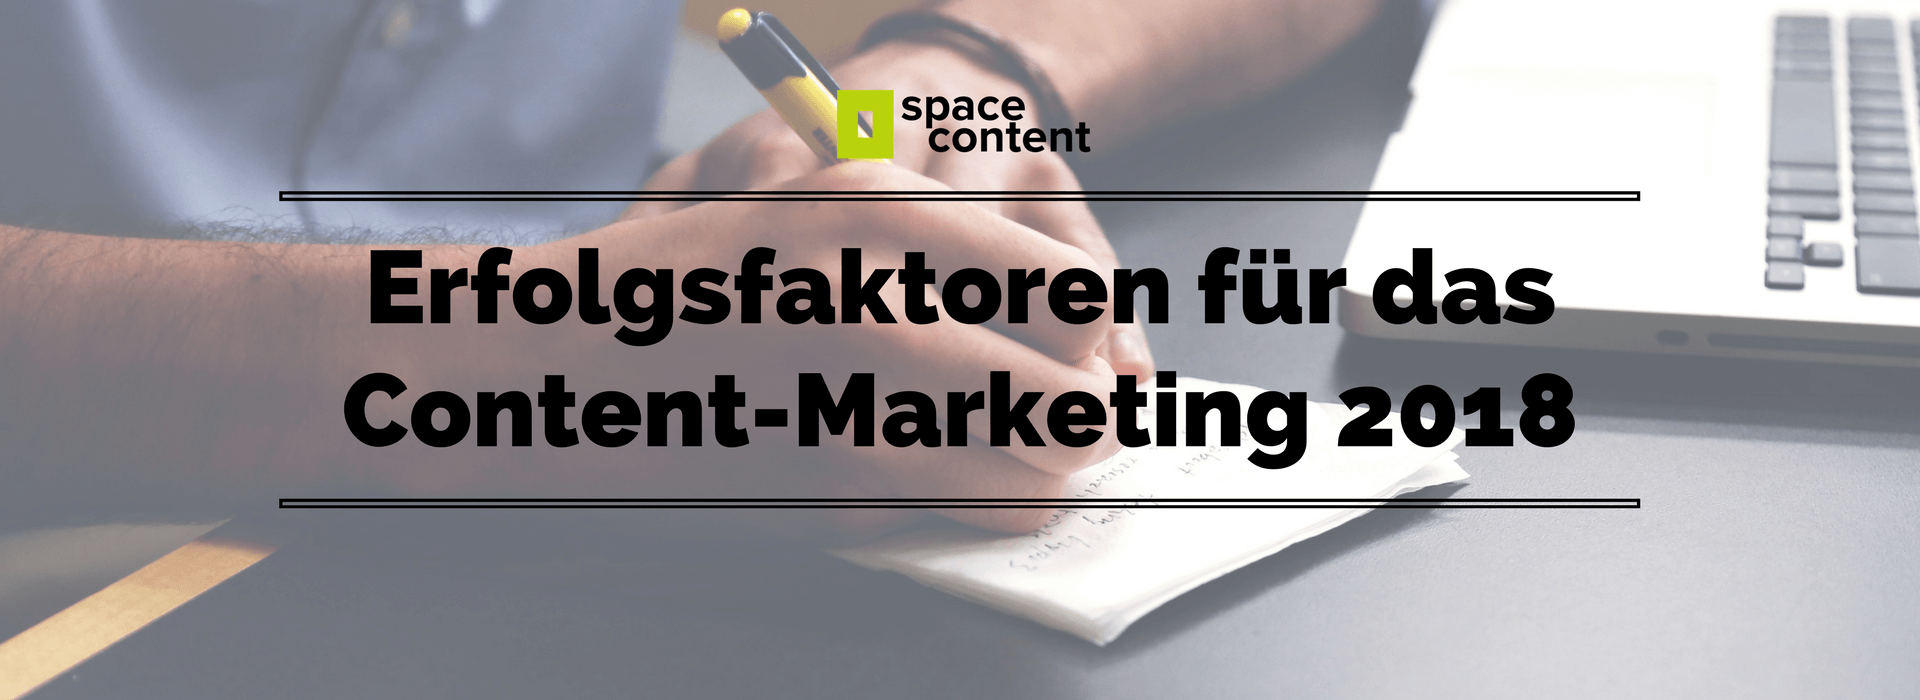 Content-Marketing 2018